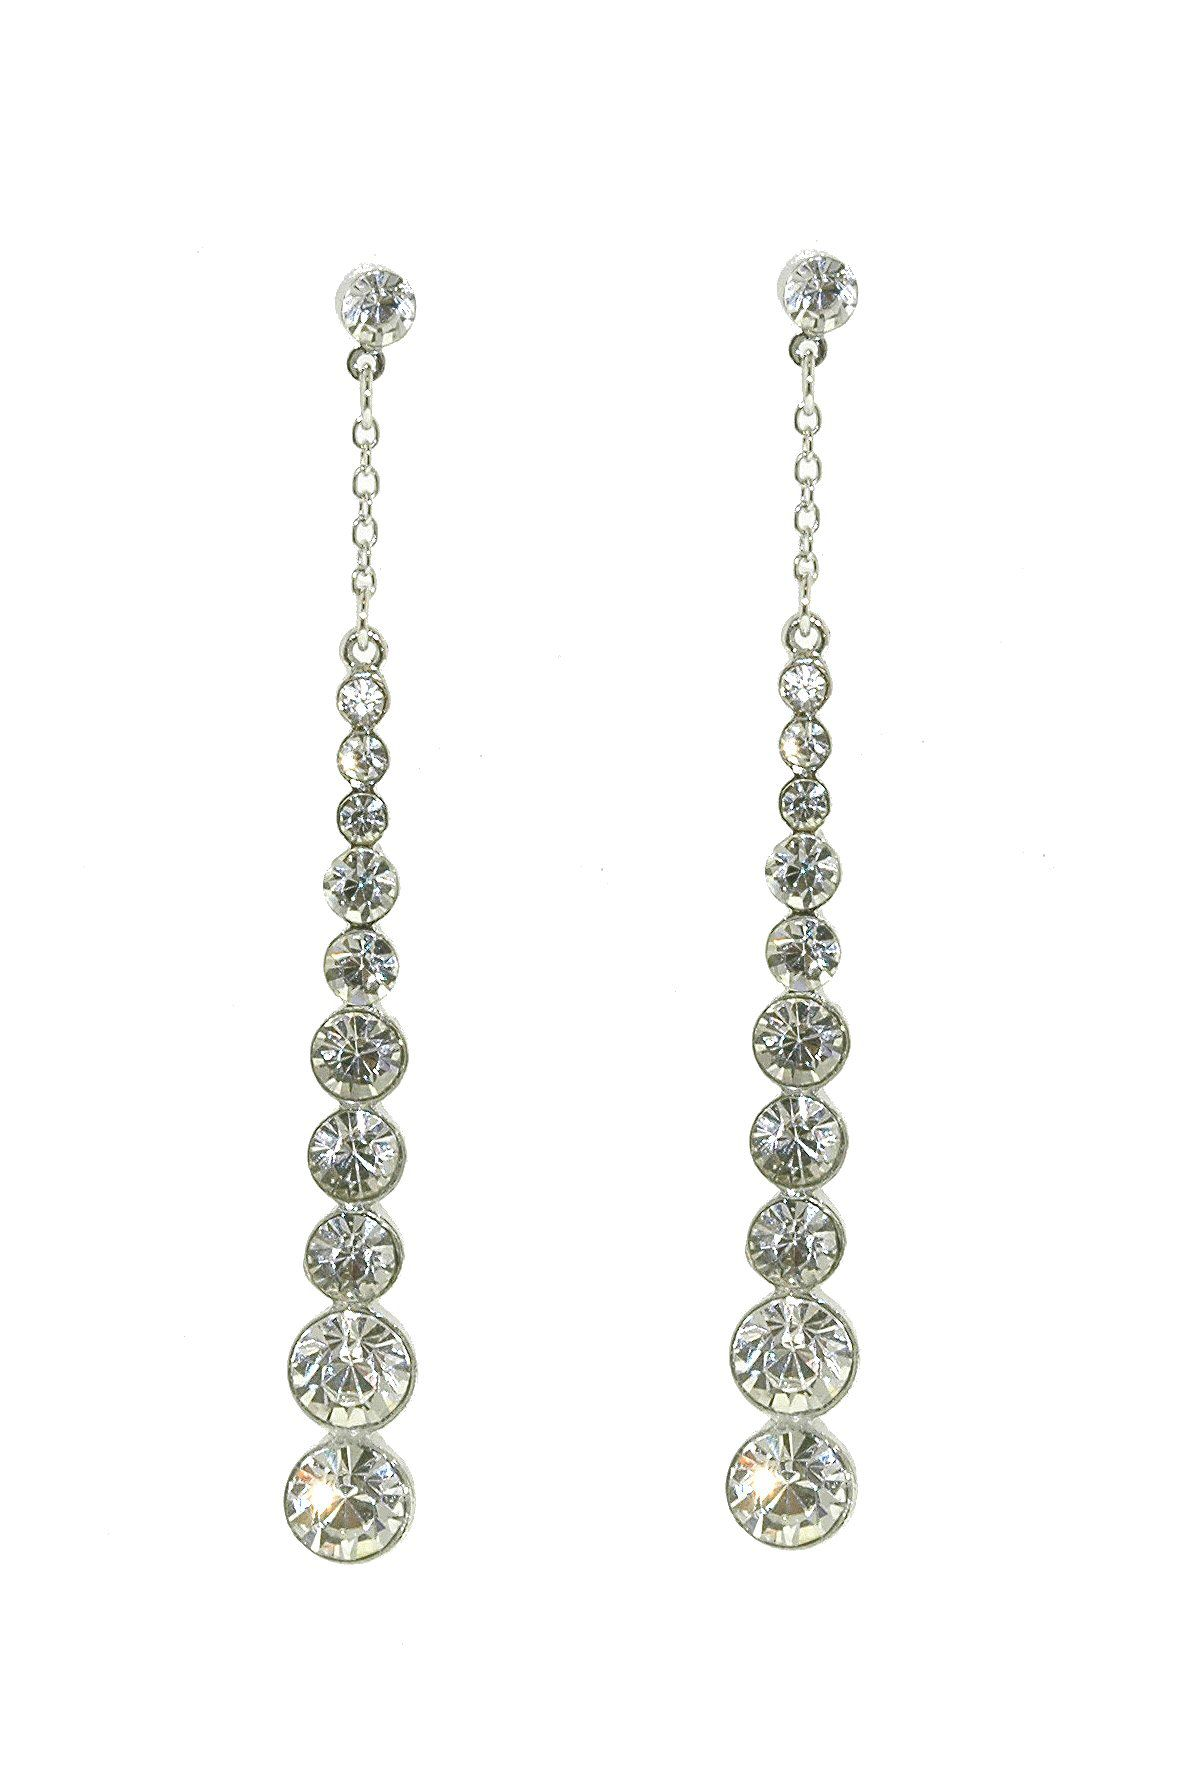 Silver & crystal long graduated drop earrings